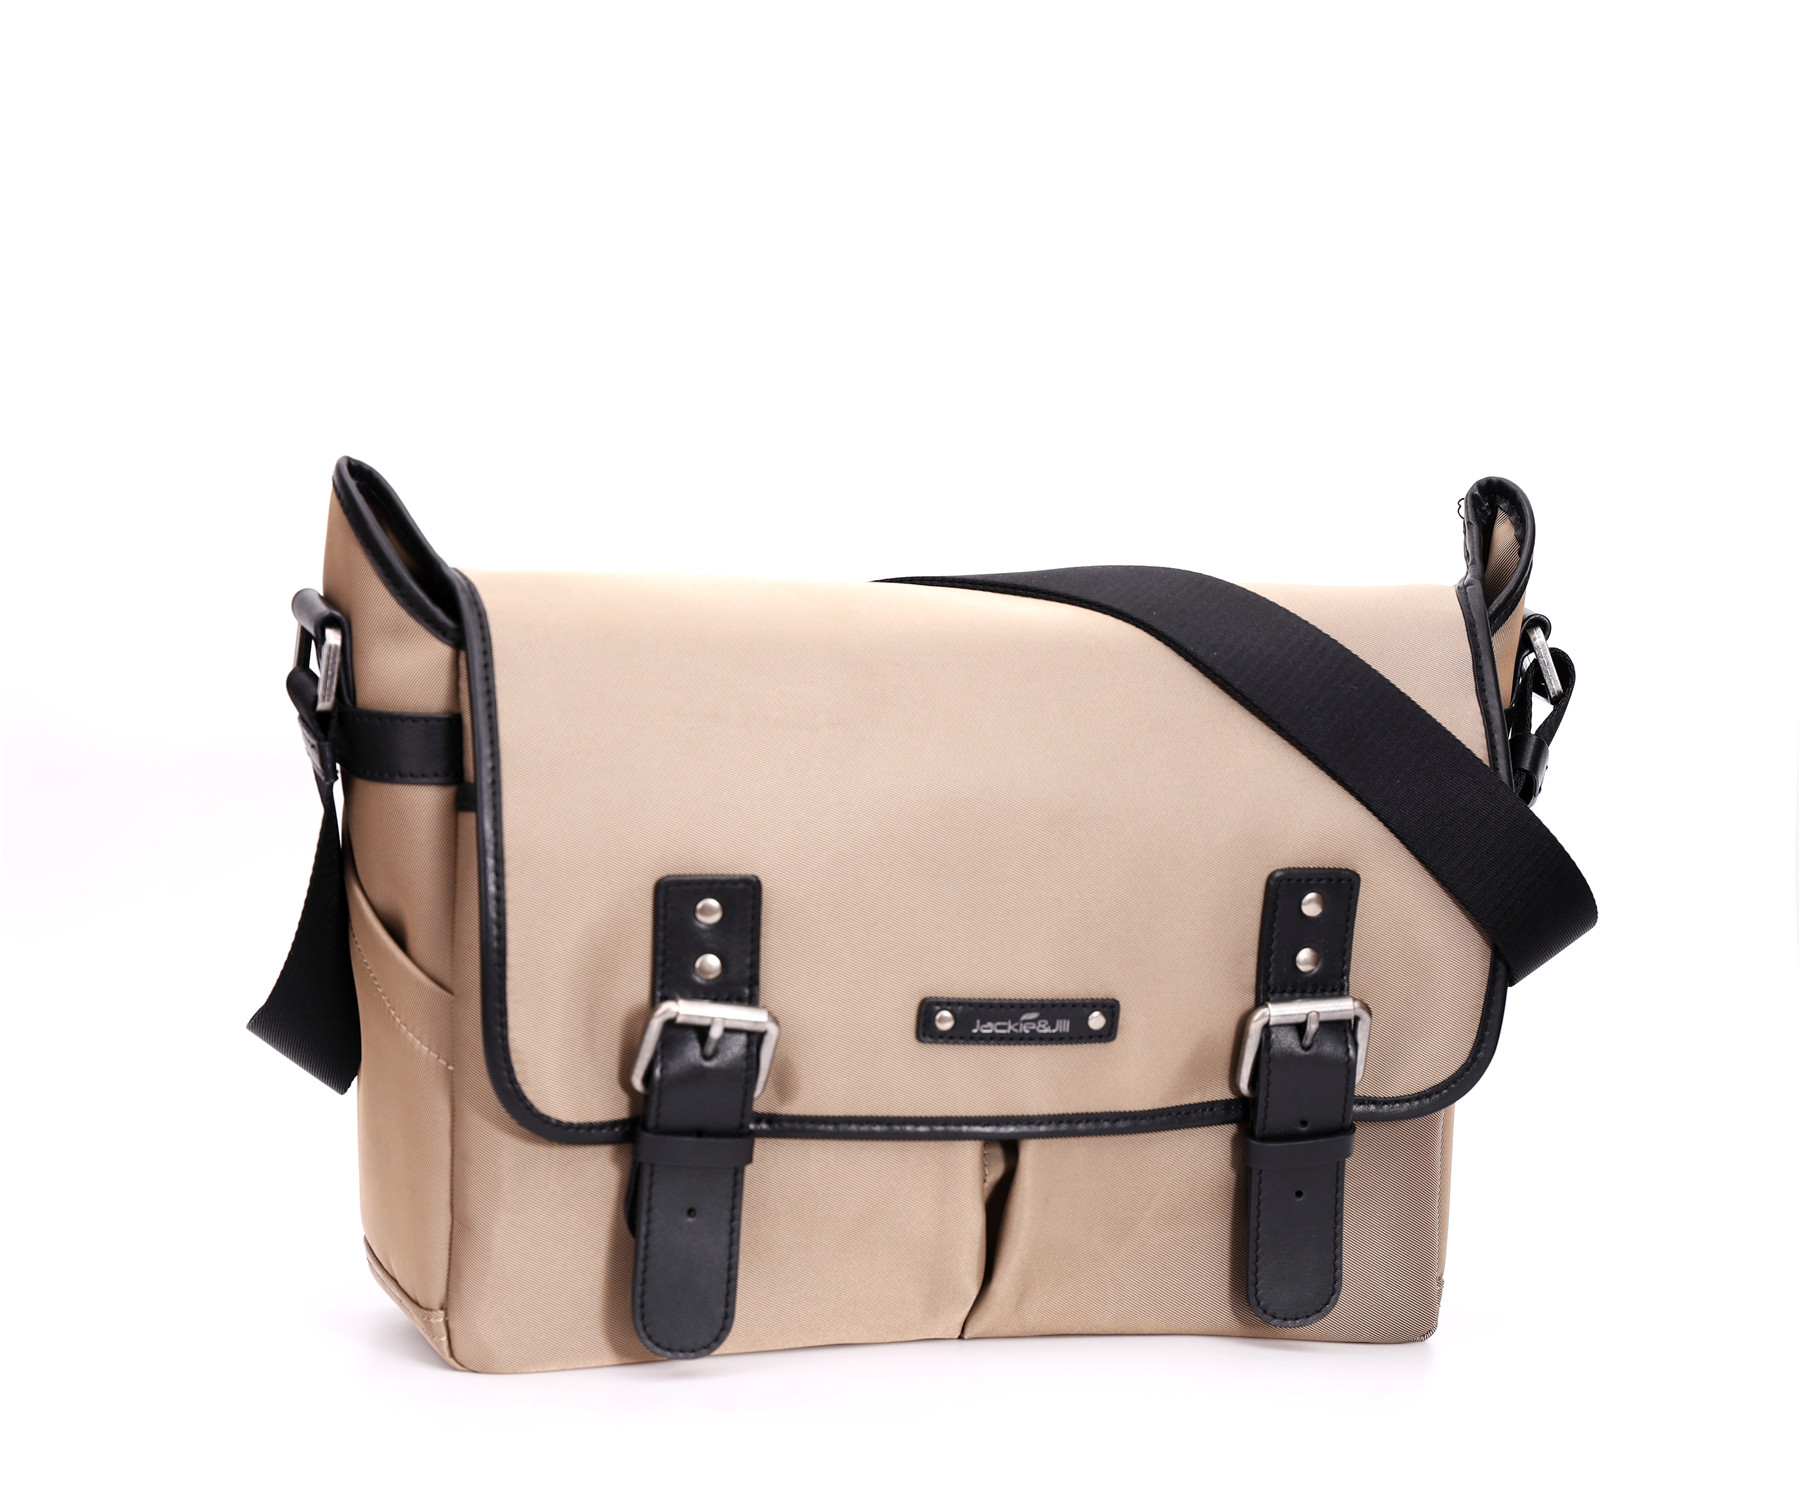 GF bags-trendy messenger bag | Messenger Bags | GF bags